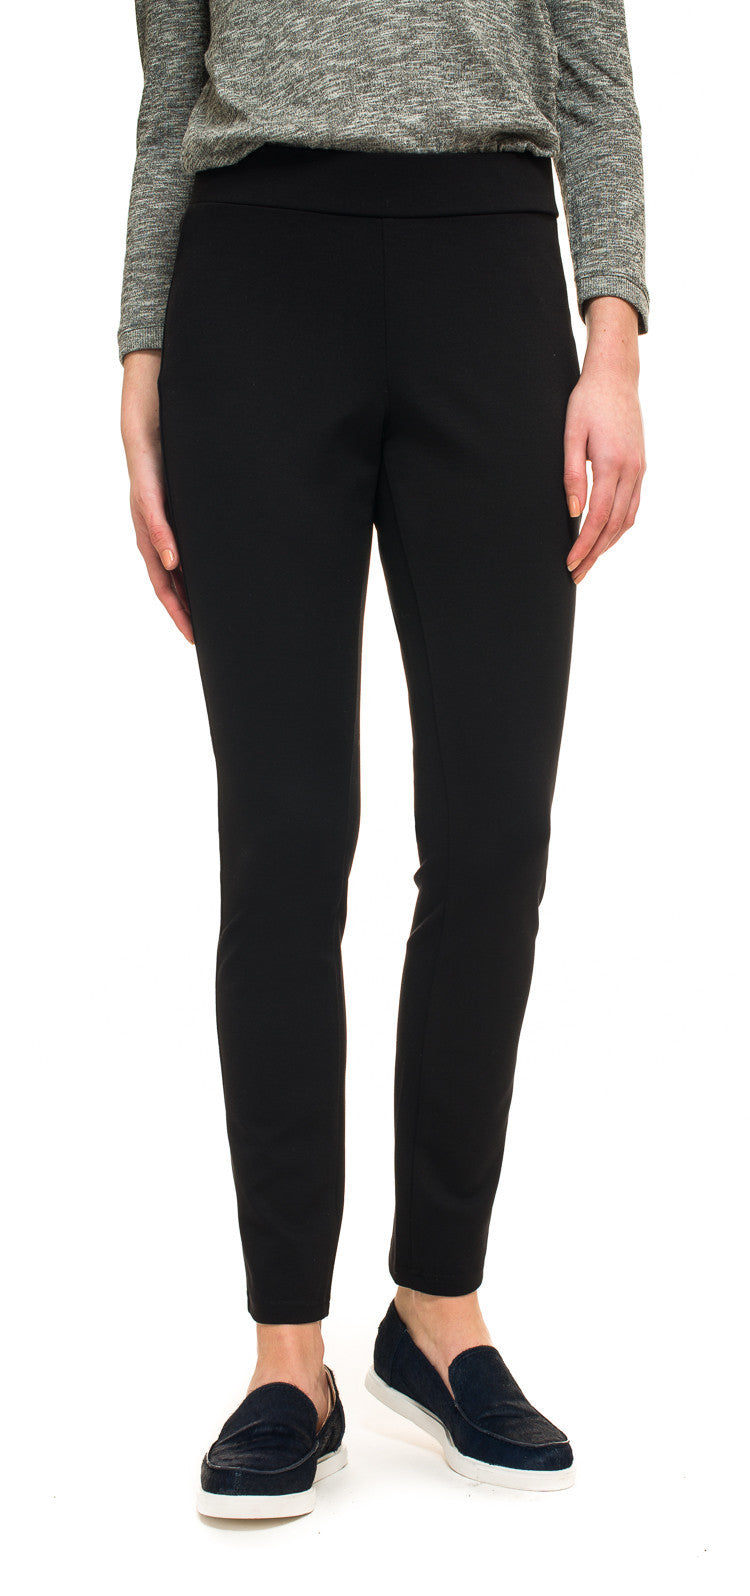 NYDJ Black Pull On Legging